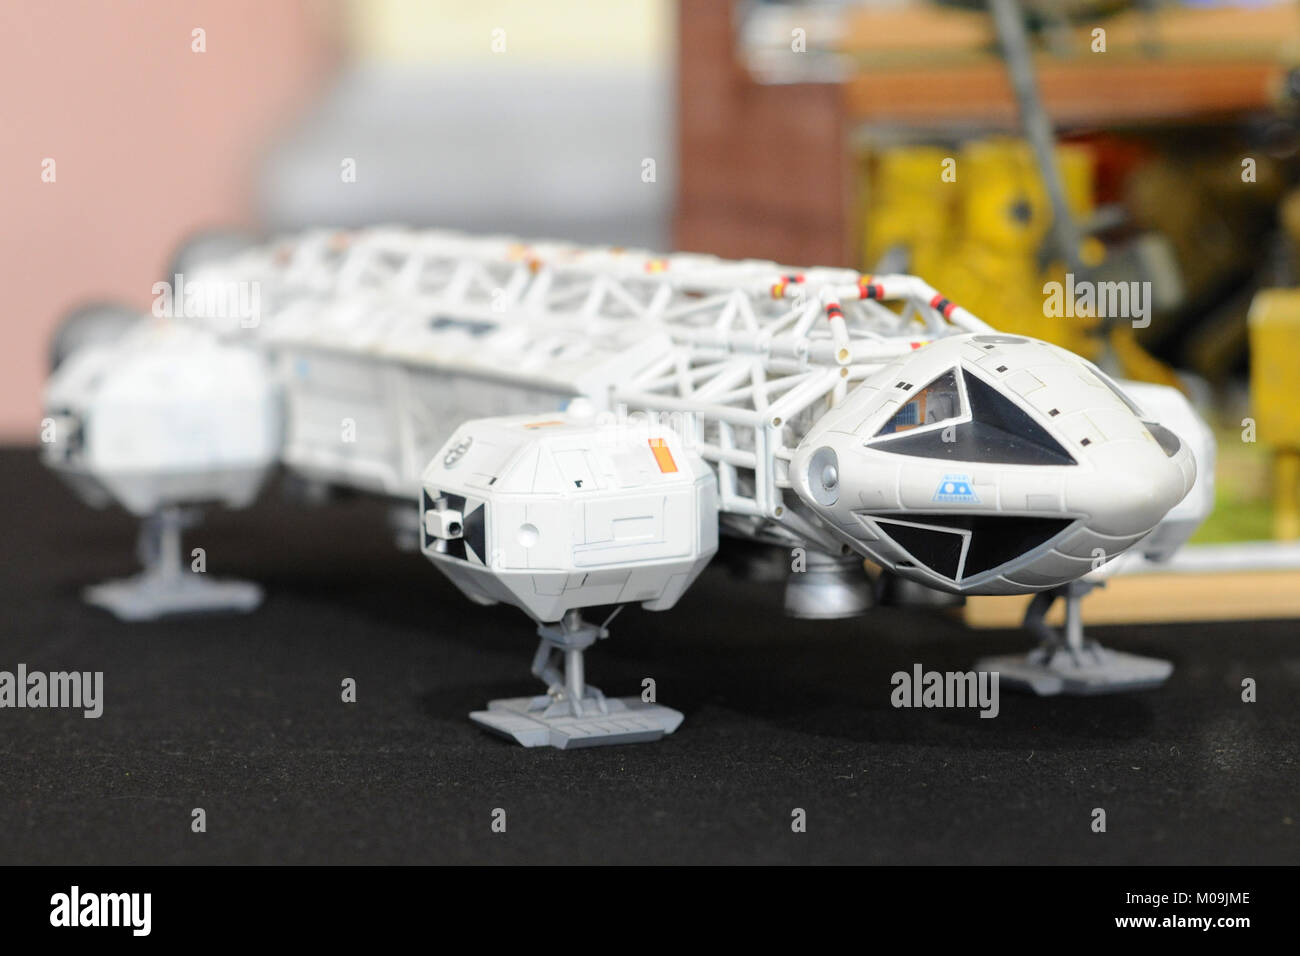 London, UK. 19th Jan, 2018. A model of an Eagle Transporter (a fictional spacecraft seen in the 1970s British television - Stock Image